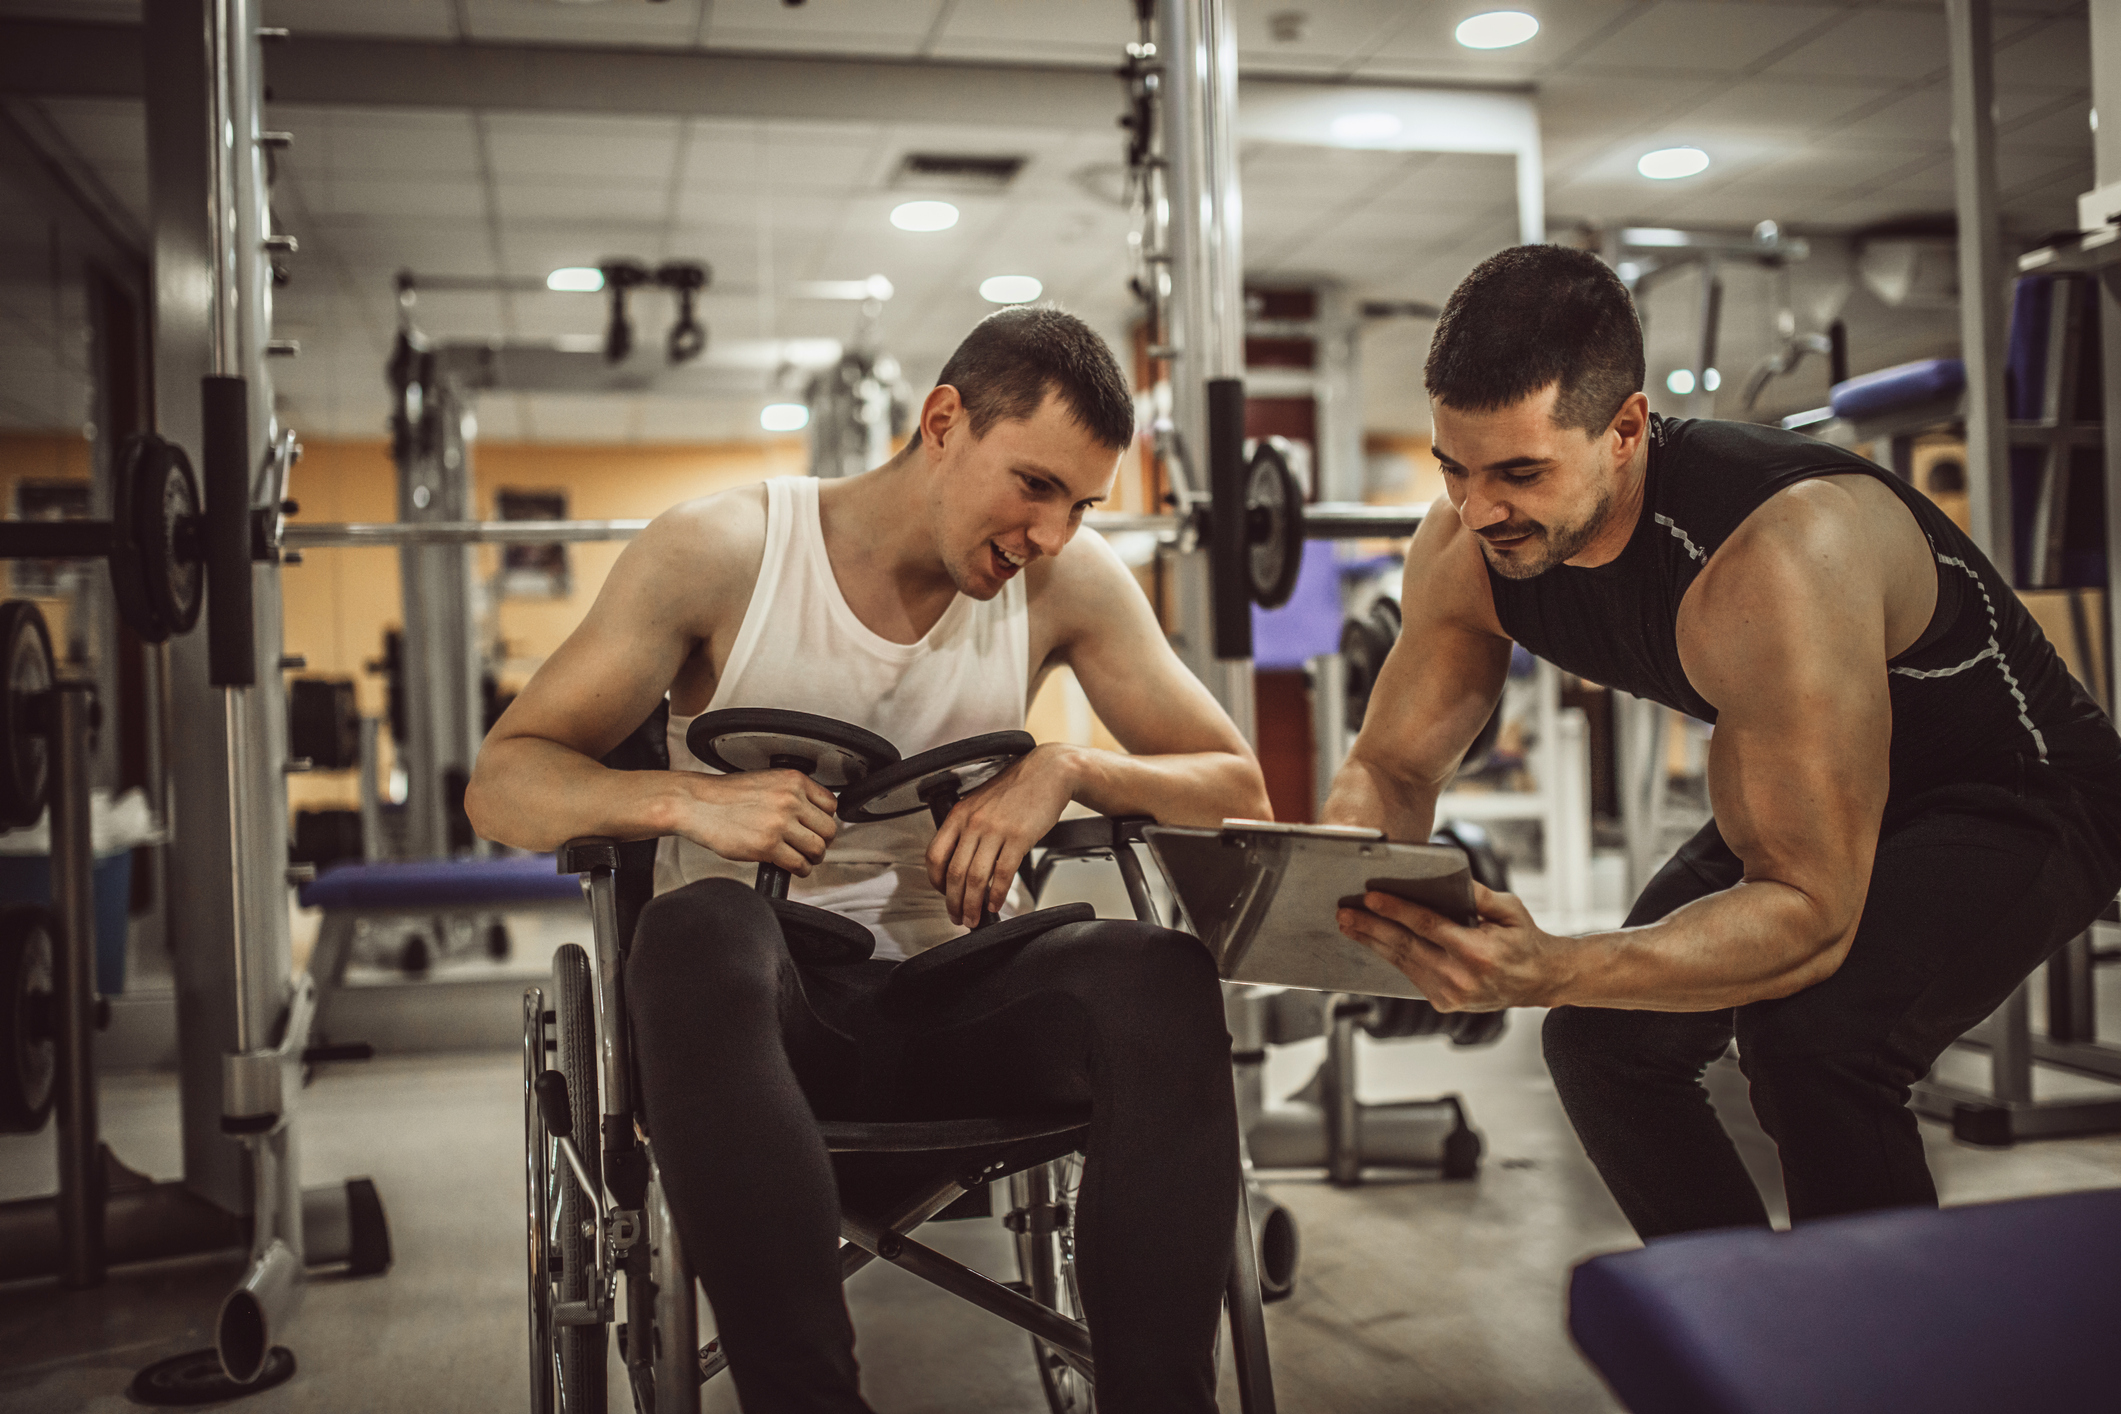 certifystrong-Personal Trainer helping patient in wheelchair in the gym